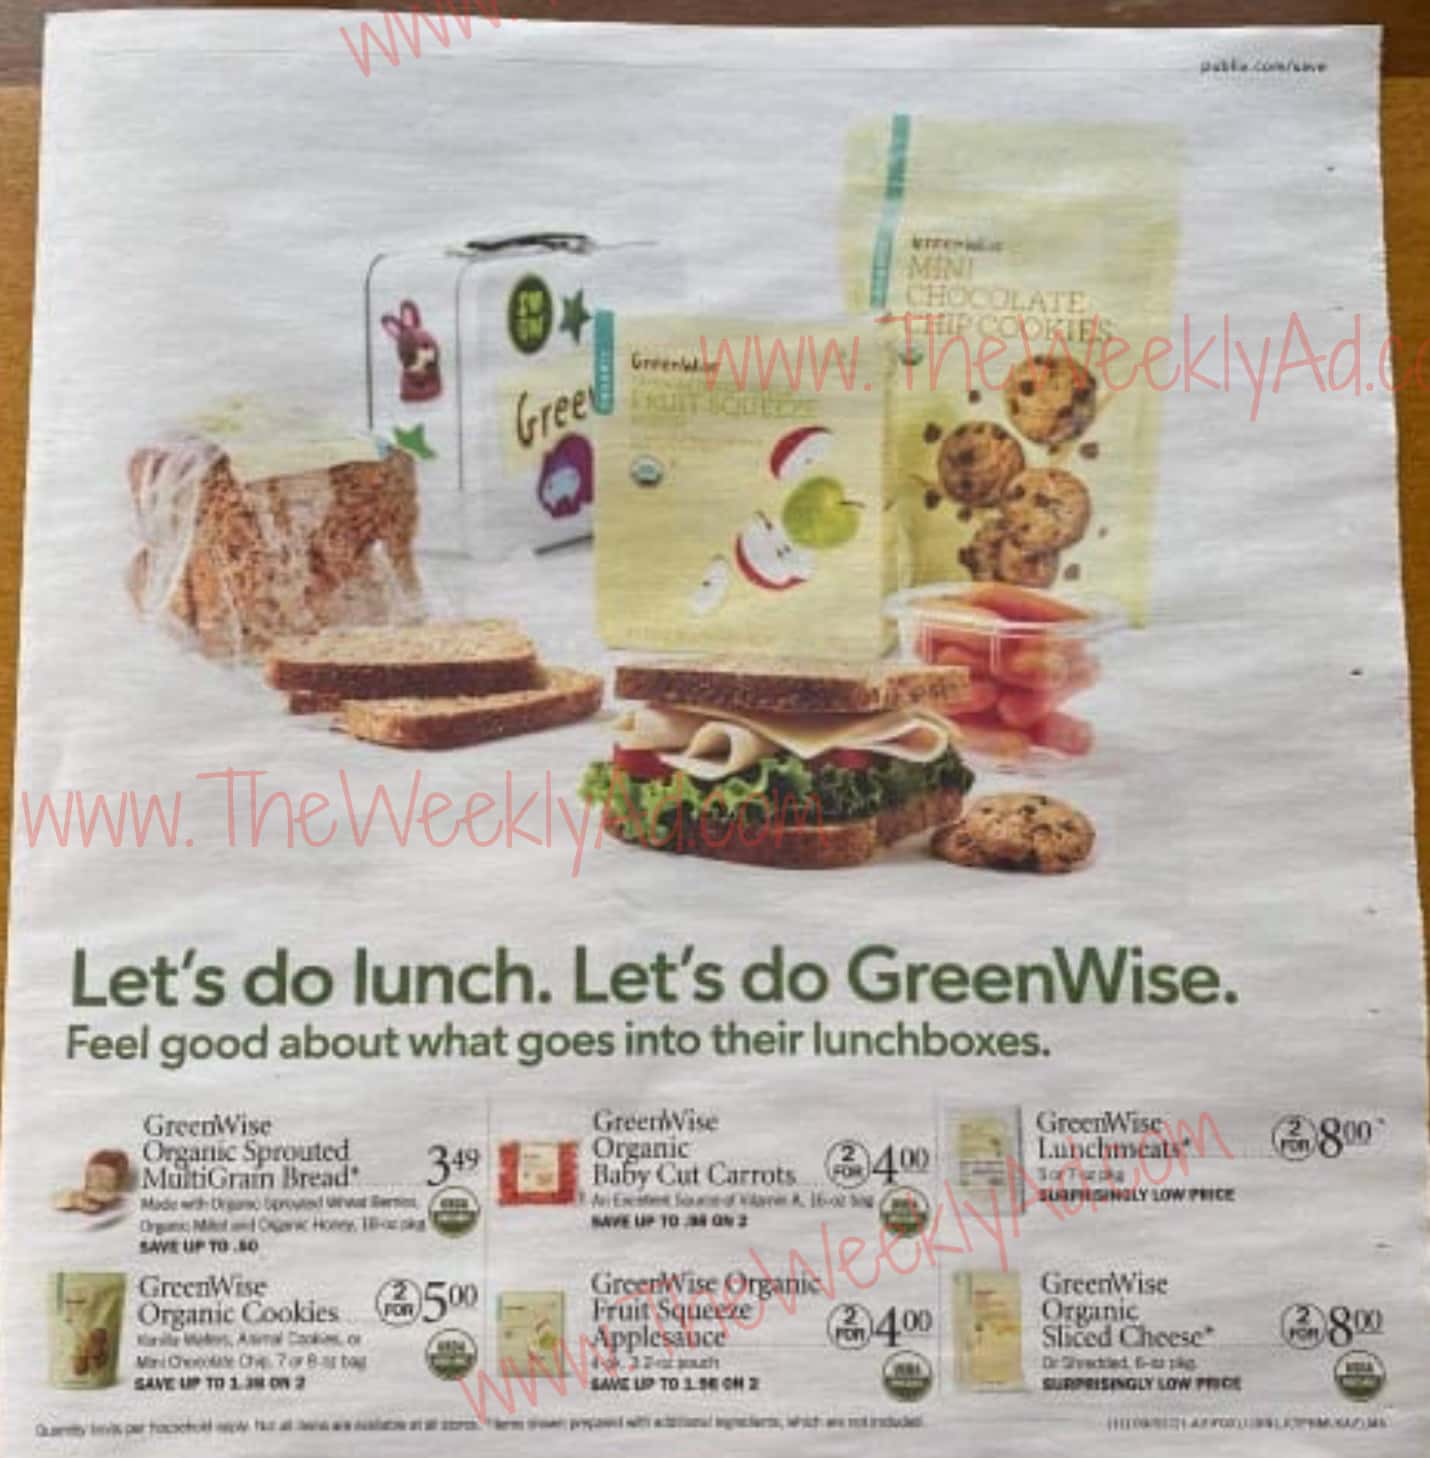 publix_weekly_ad_090121_11